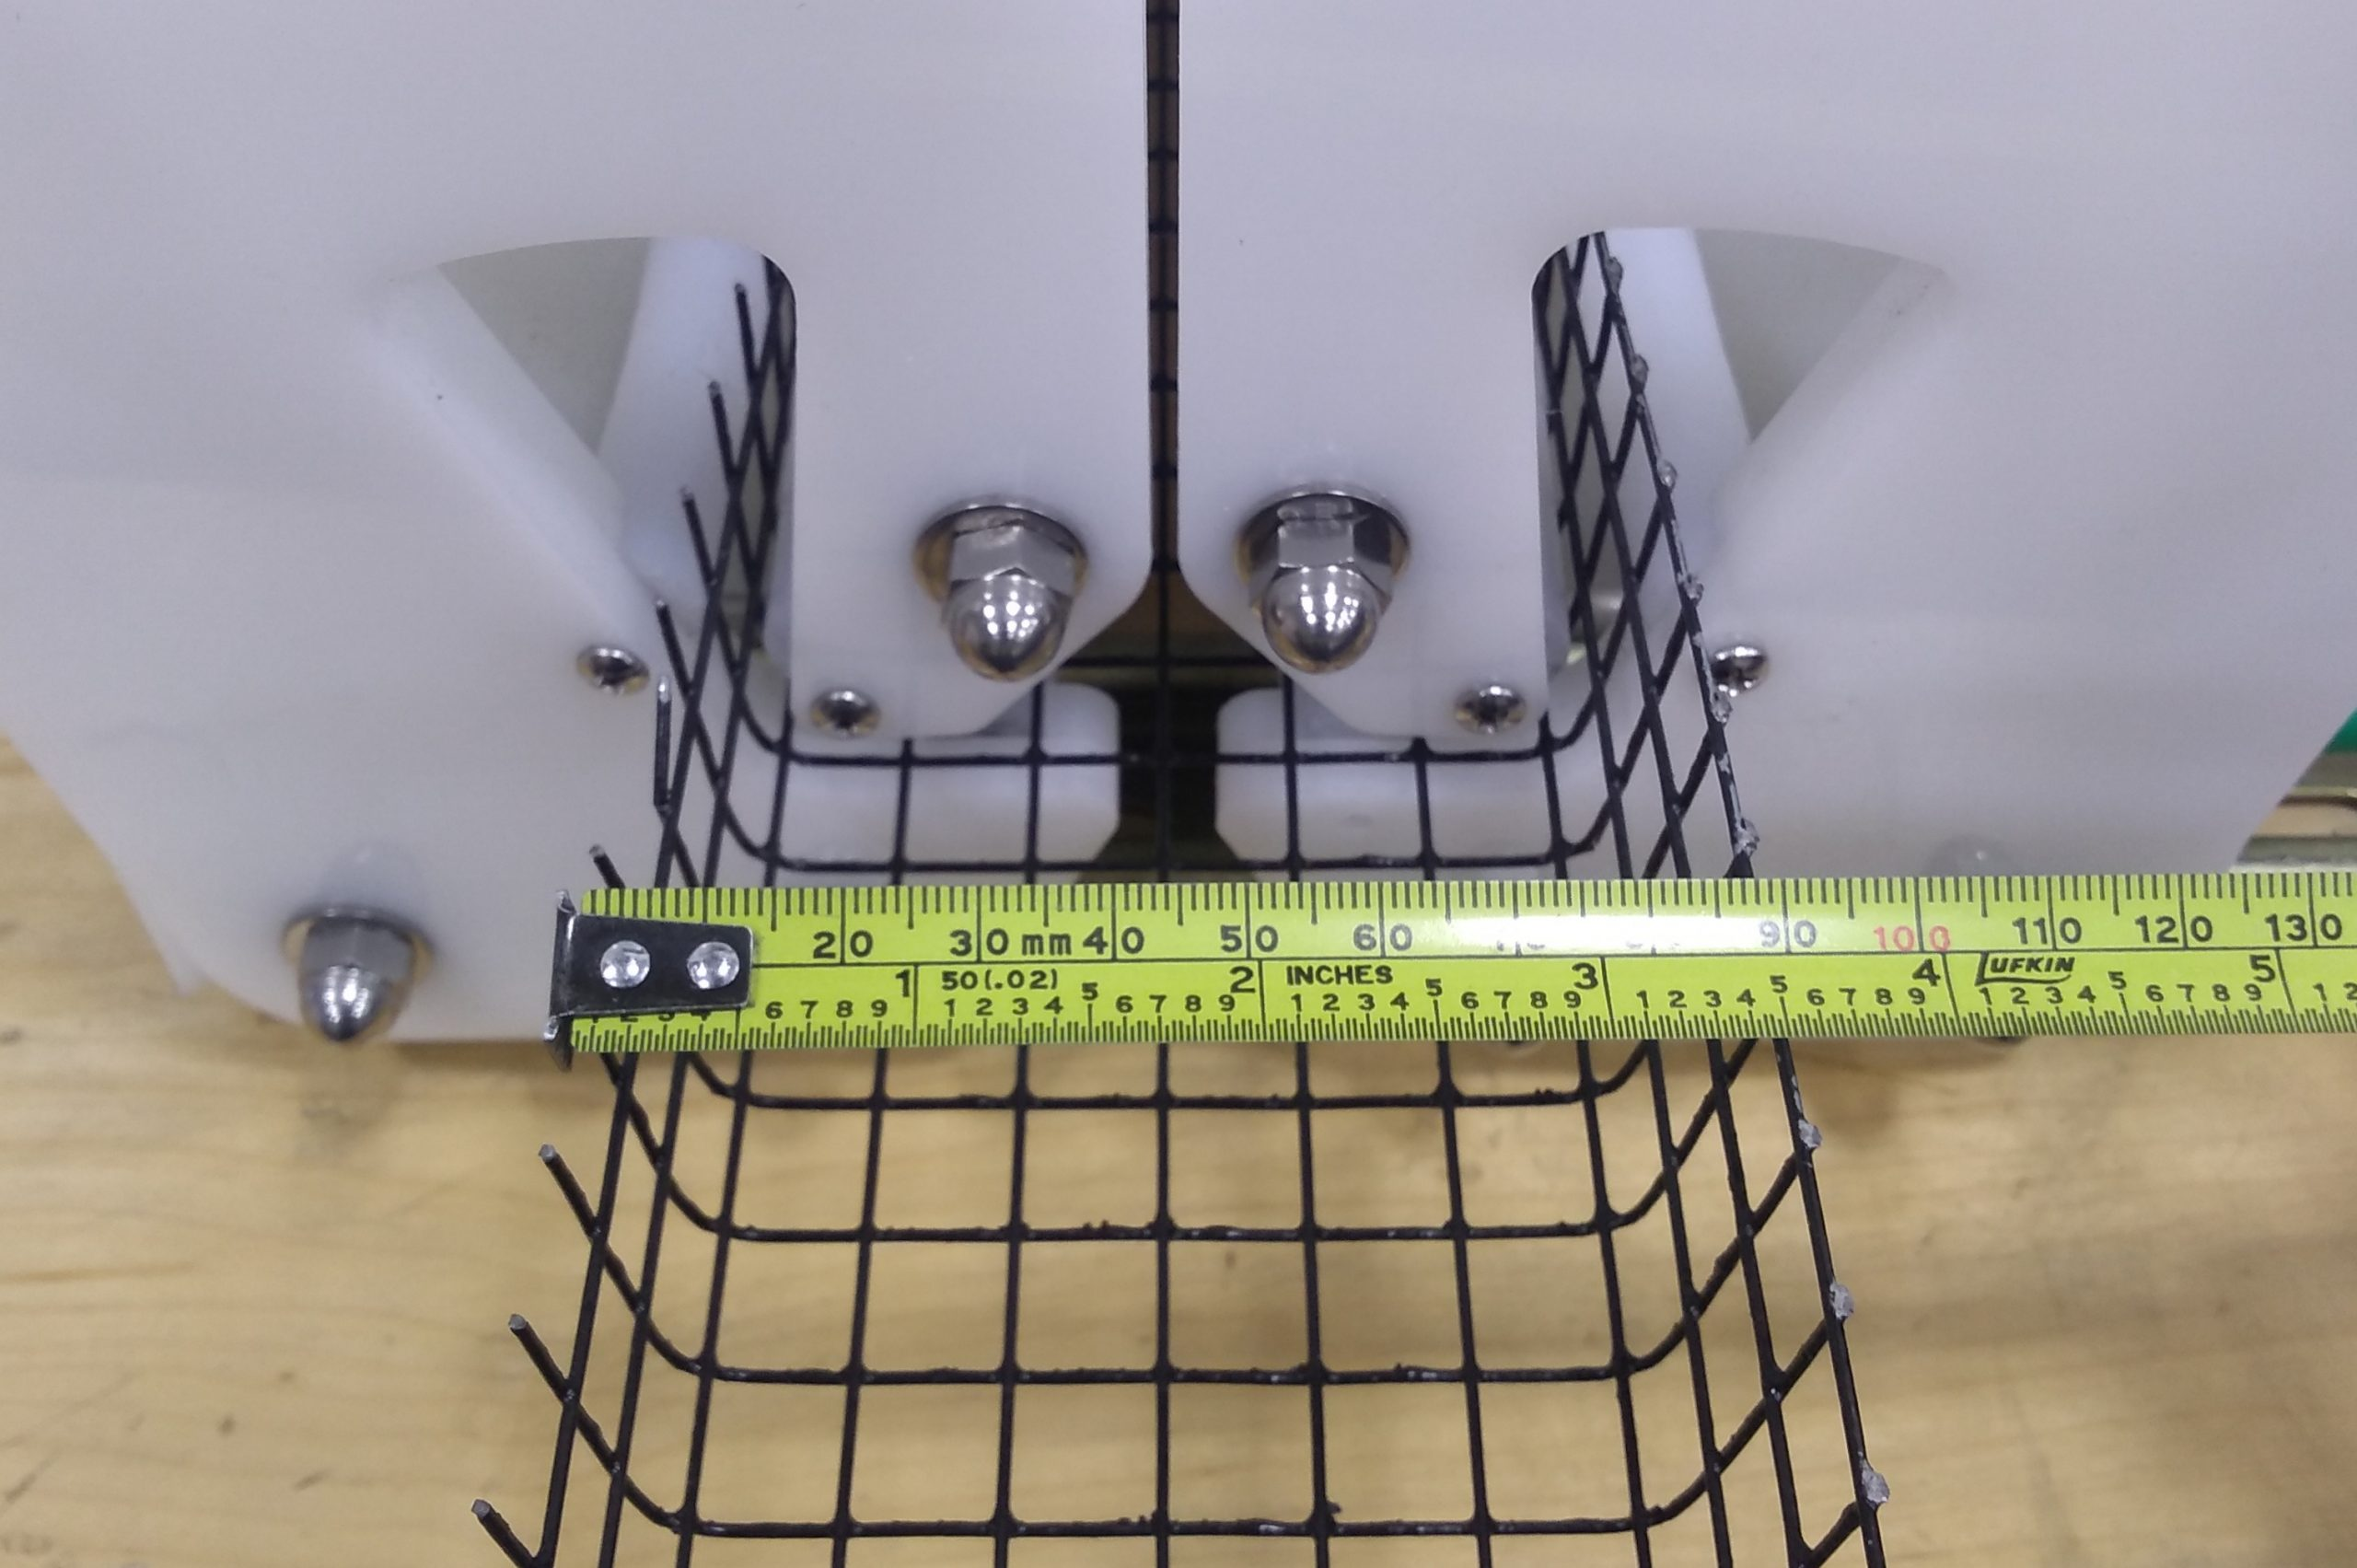 wire mesh profile with tape measure showing width